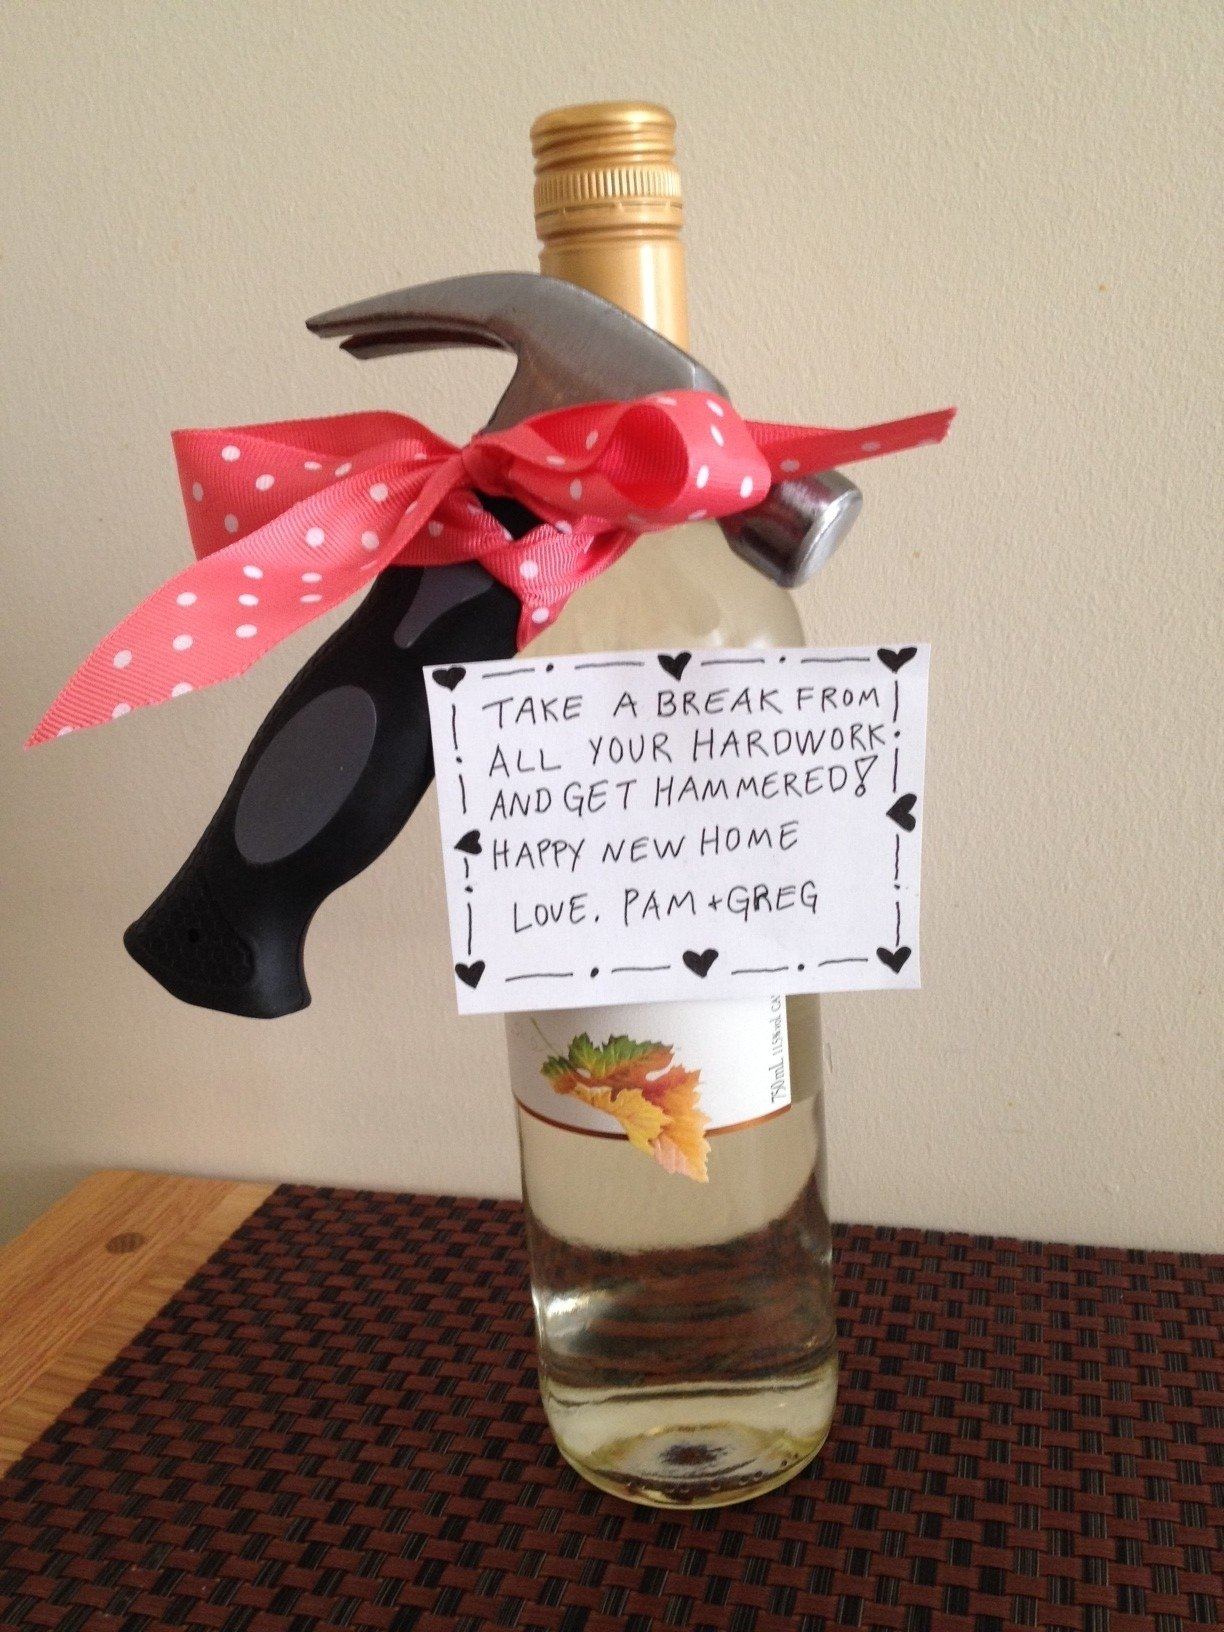 competitive whats a good housewarming gift ideas for couple zhis me